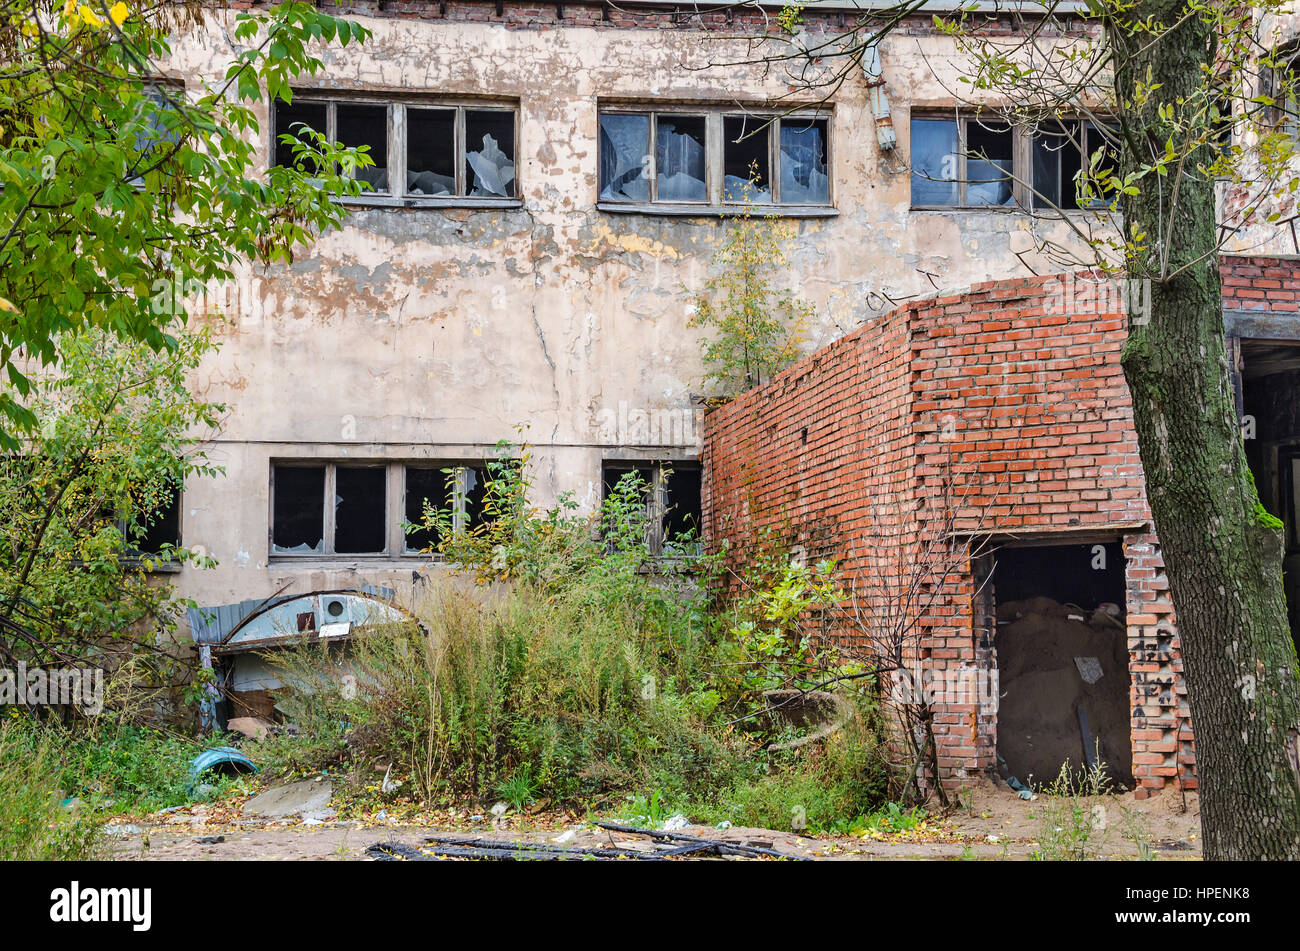 Unattended destroyed and devastated building with broken windows, smashed doors and scrap over the imbruted lot - Stock Image